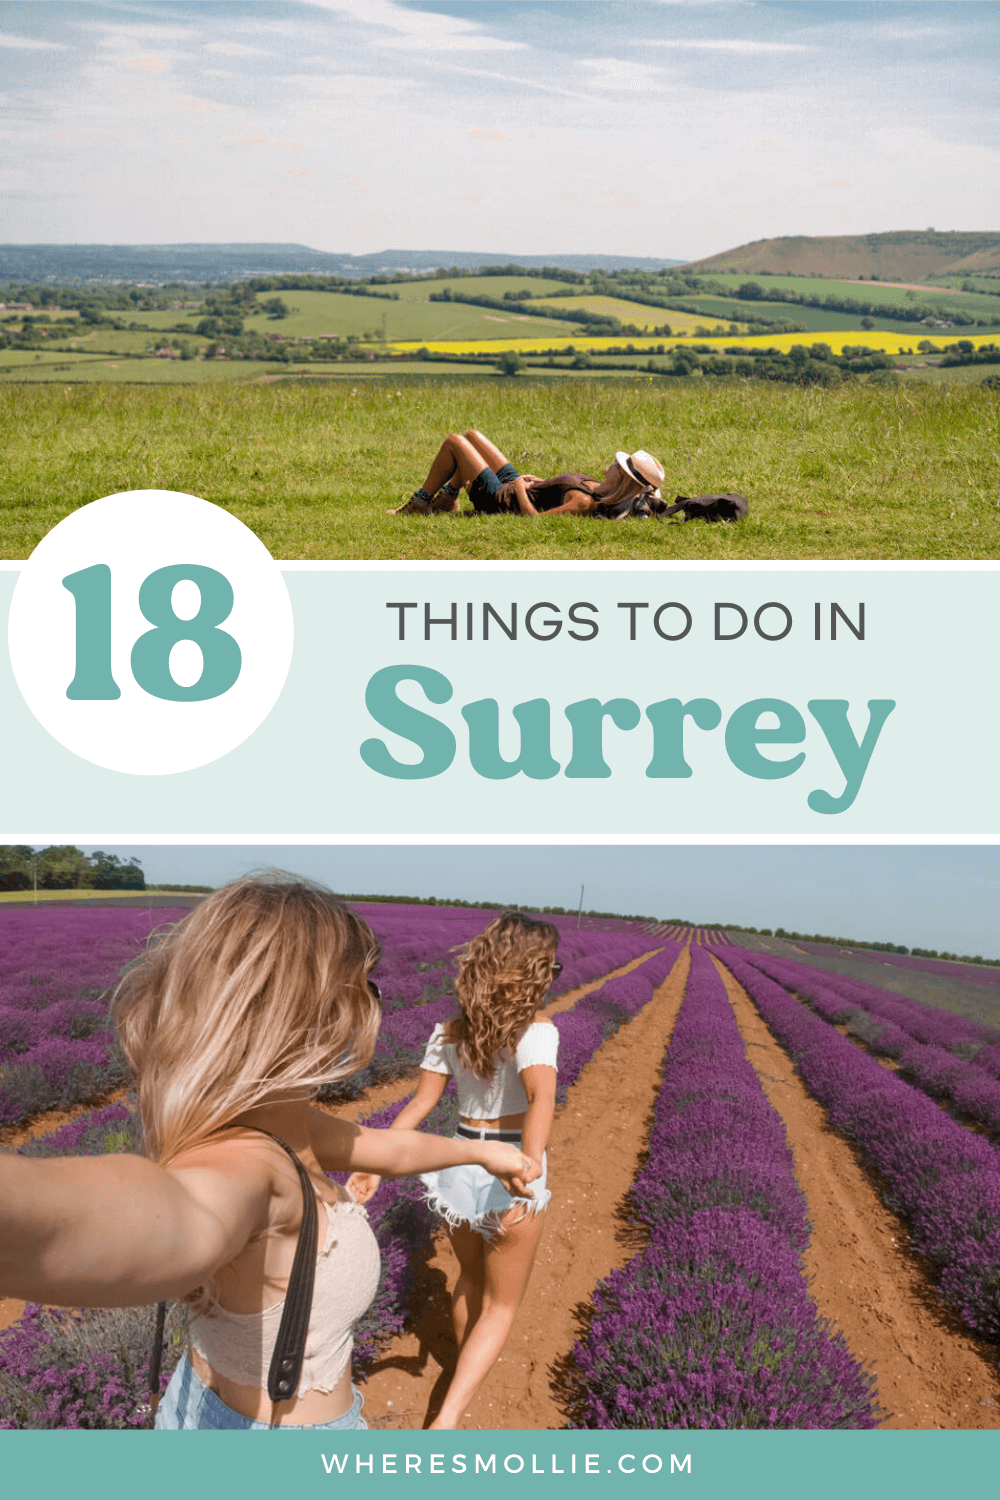 The best places to visit in Surrey, England